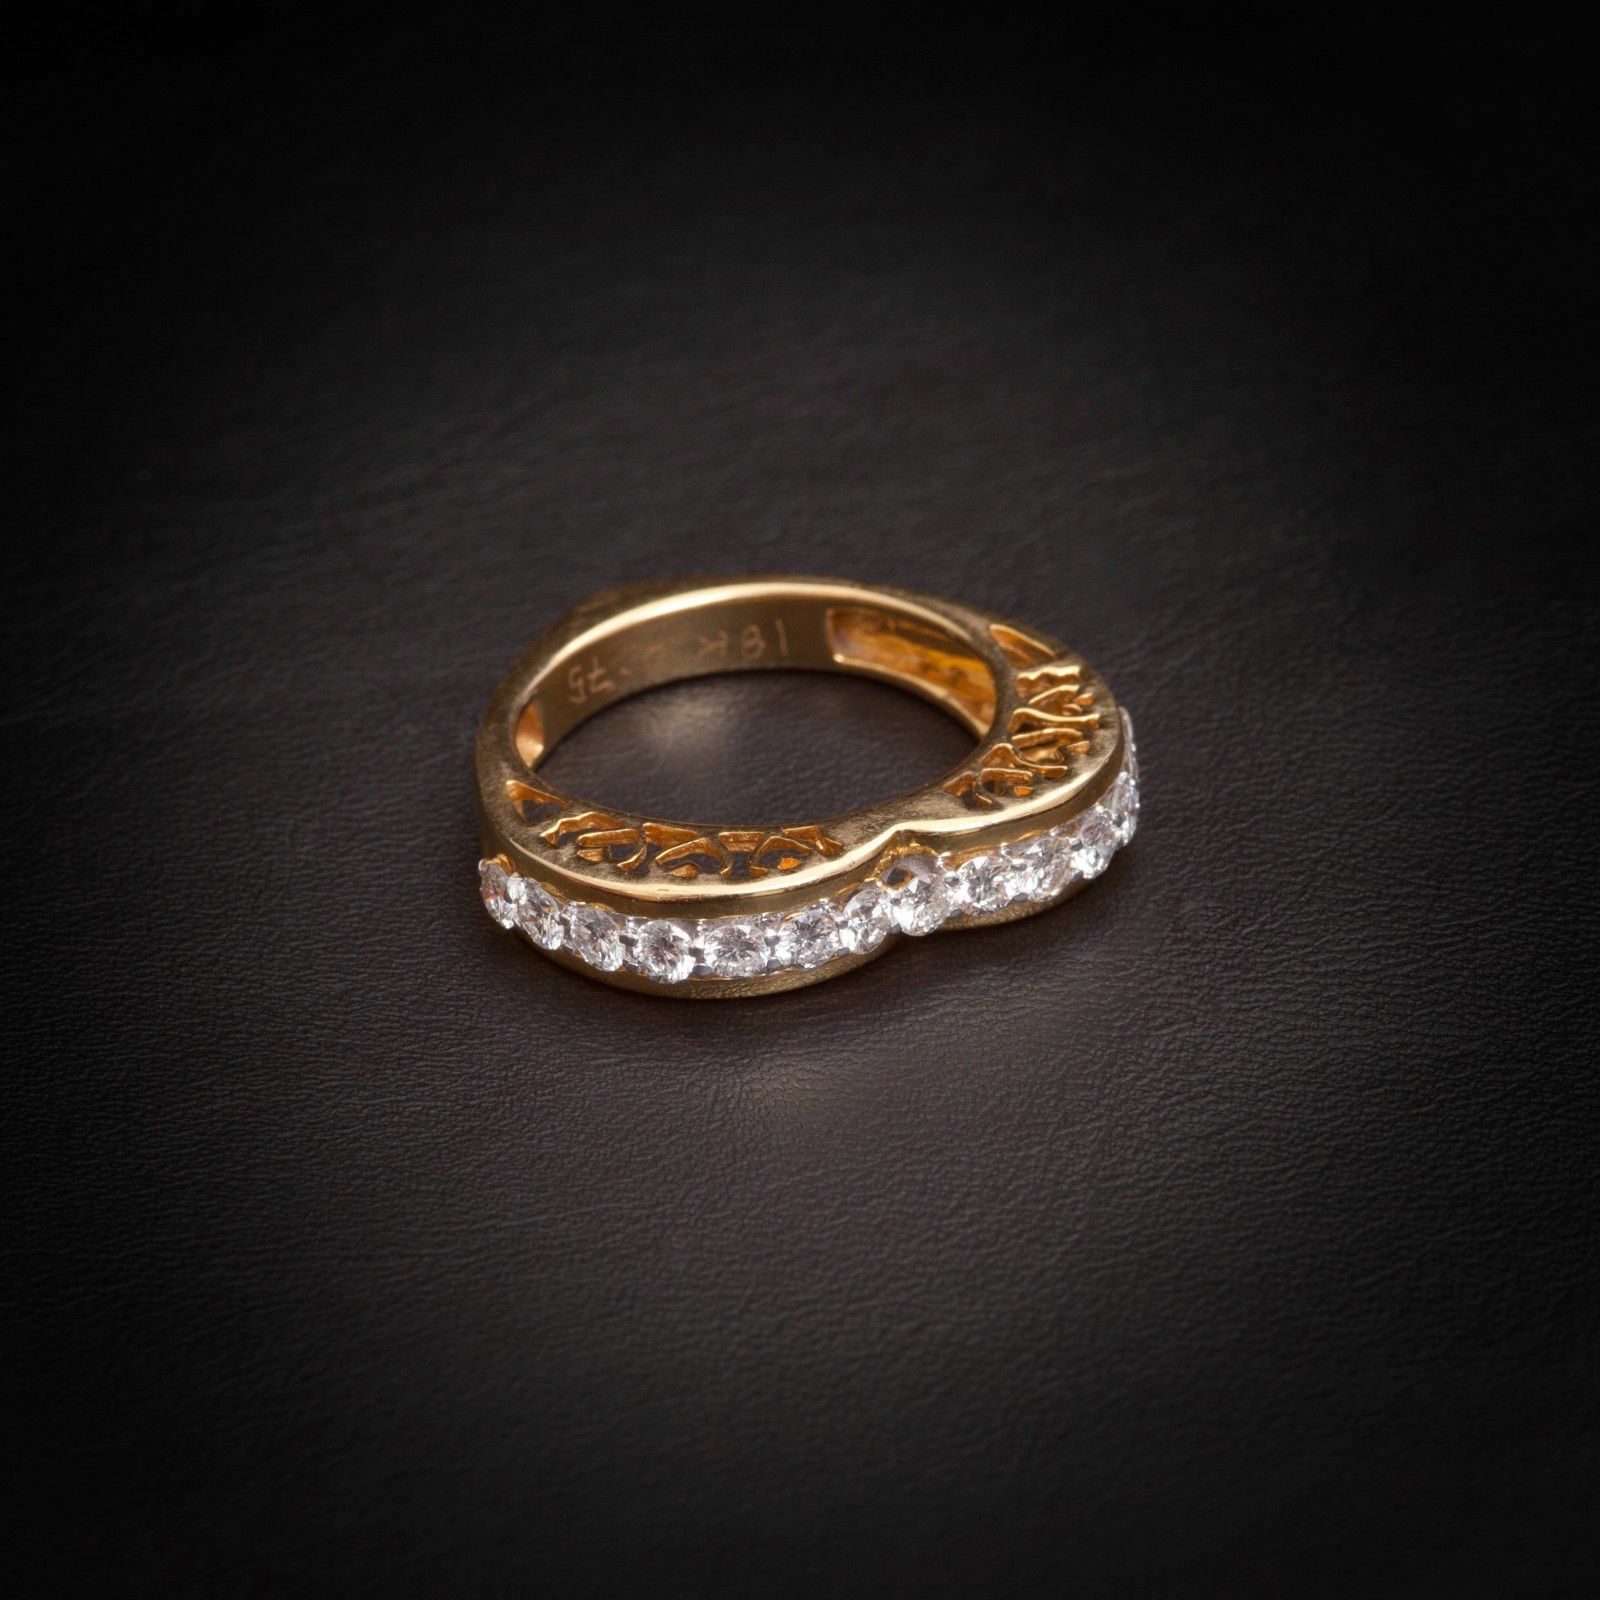 Pave 0.75 Cts F VS1 Natural Diamonds Engagement Ring In Solid Certified 14K gold